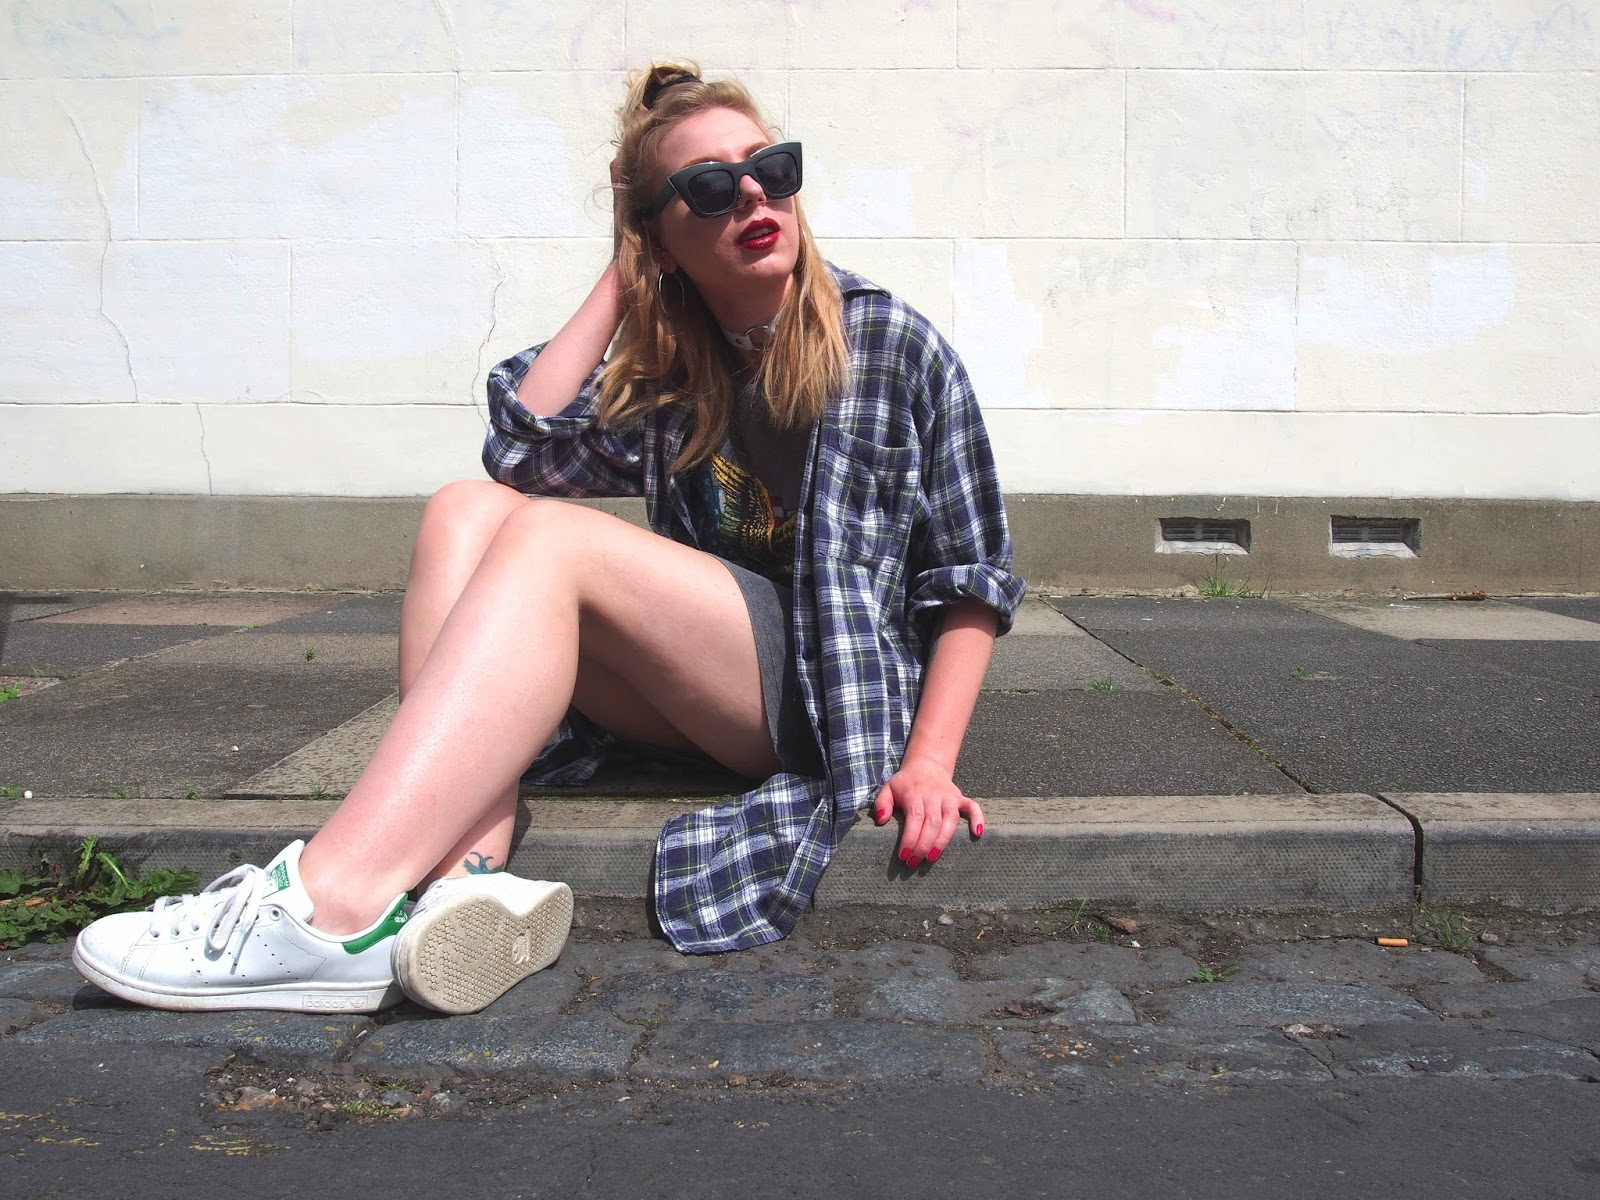 casual slouchy summer outfit ootd, grunge fashion style, 90's grunge outfit inspiration, o ring white choker, stan smiths, oversized vintage plaid flannel shirt, backless tshirt dress 14